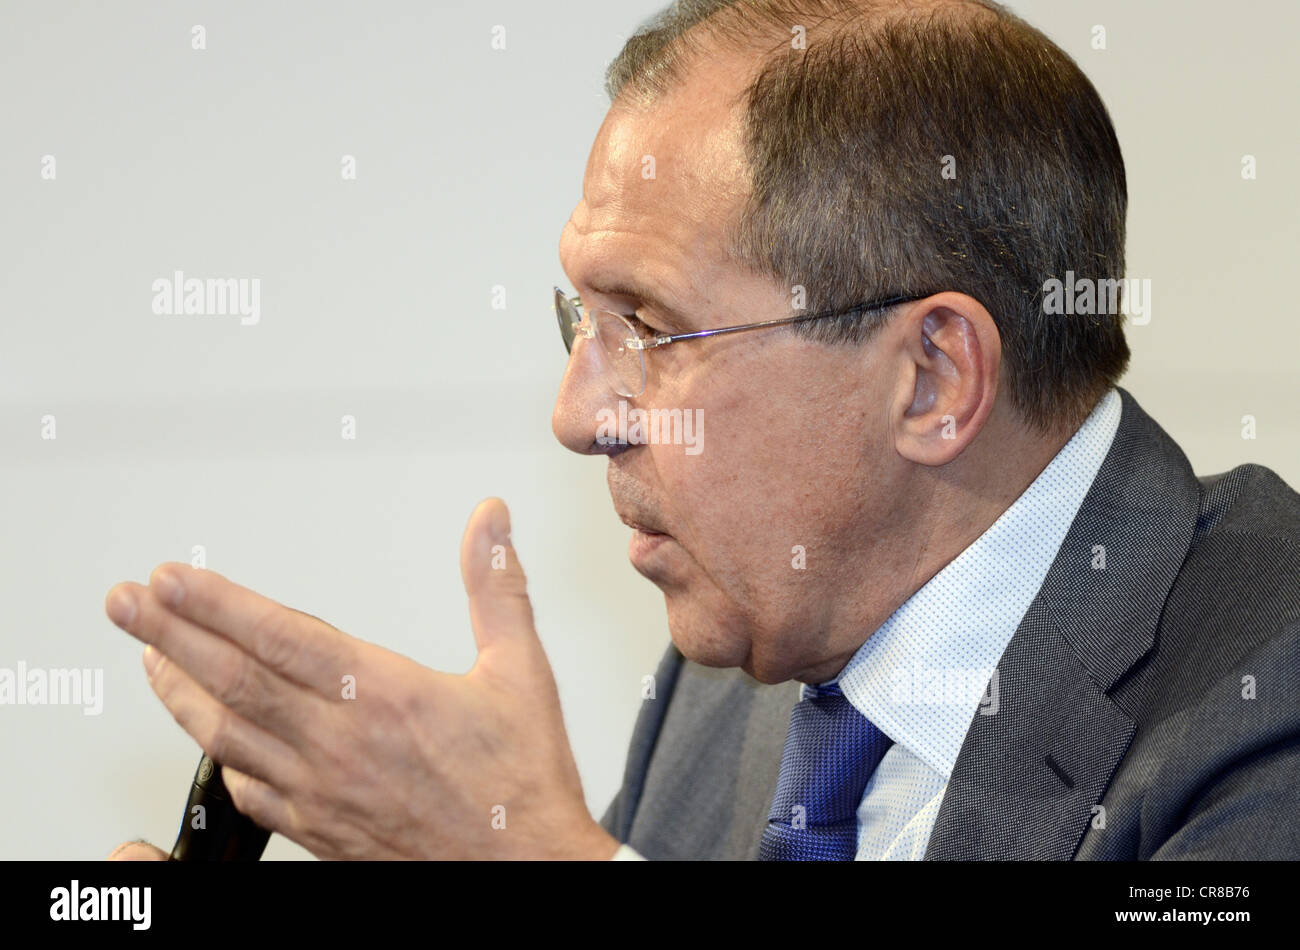 Lavrov, Sergey, * 21.3.1950, Russian politician, diplomat, foreign minister since 2004, portrait, members on the - Stock Image